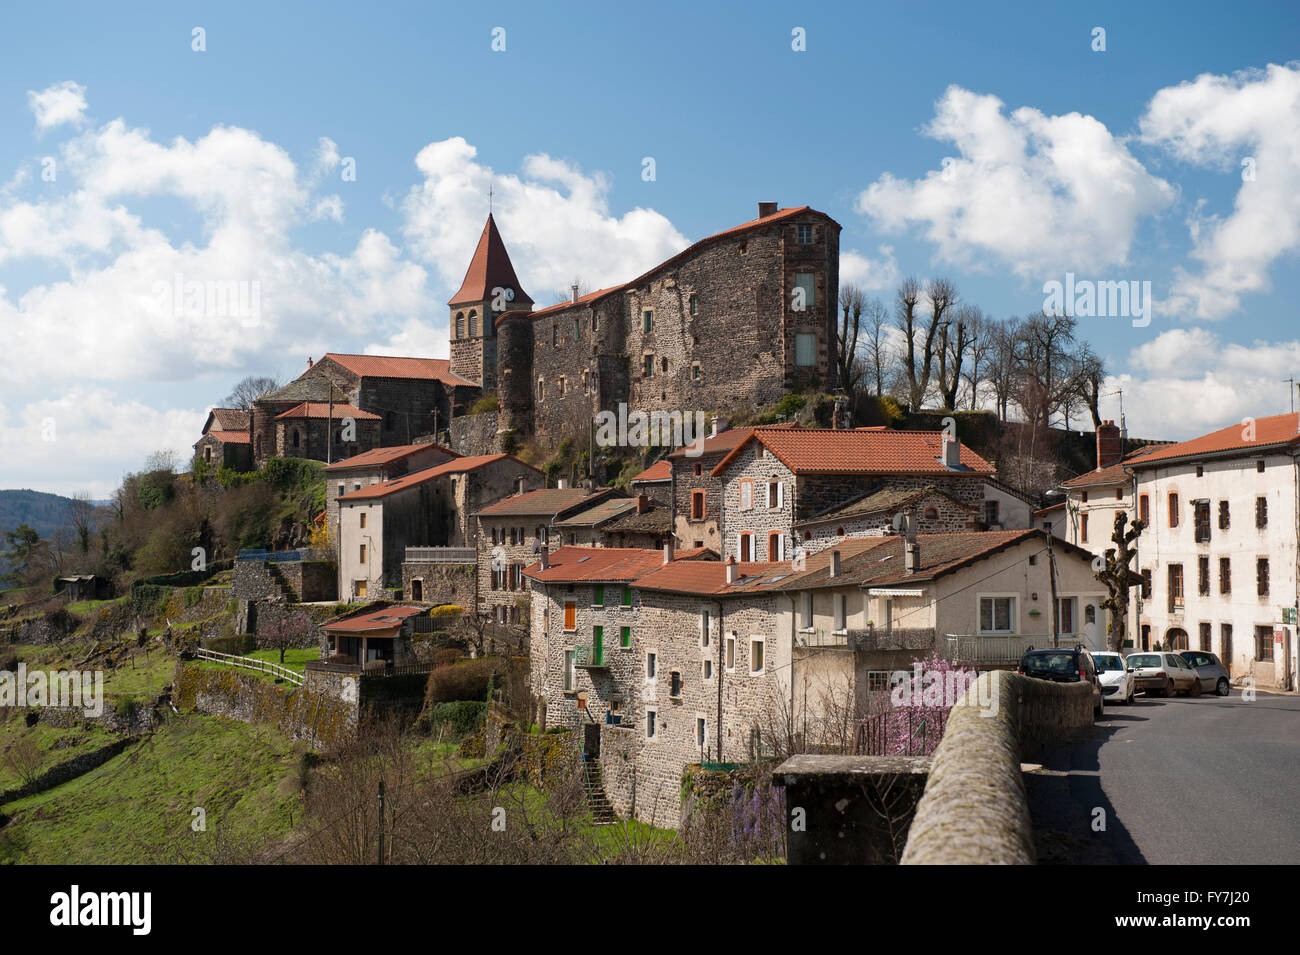 Village of Saint-Privat-d'Allier  in Haute-Loire department,Auvergne, France, with fort and church - Stock Image